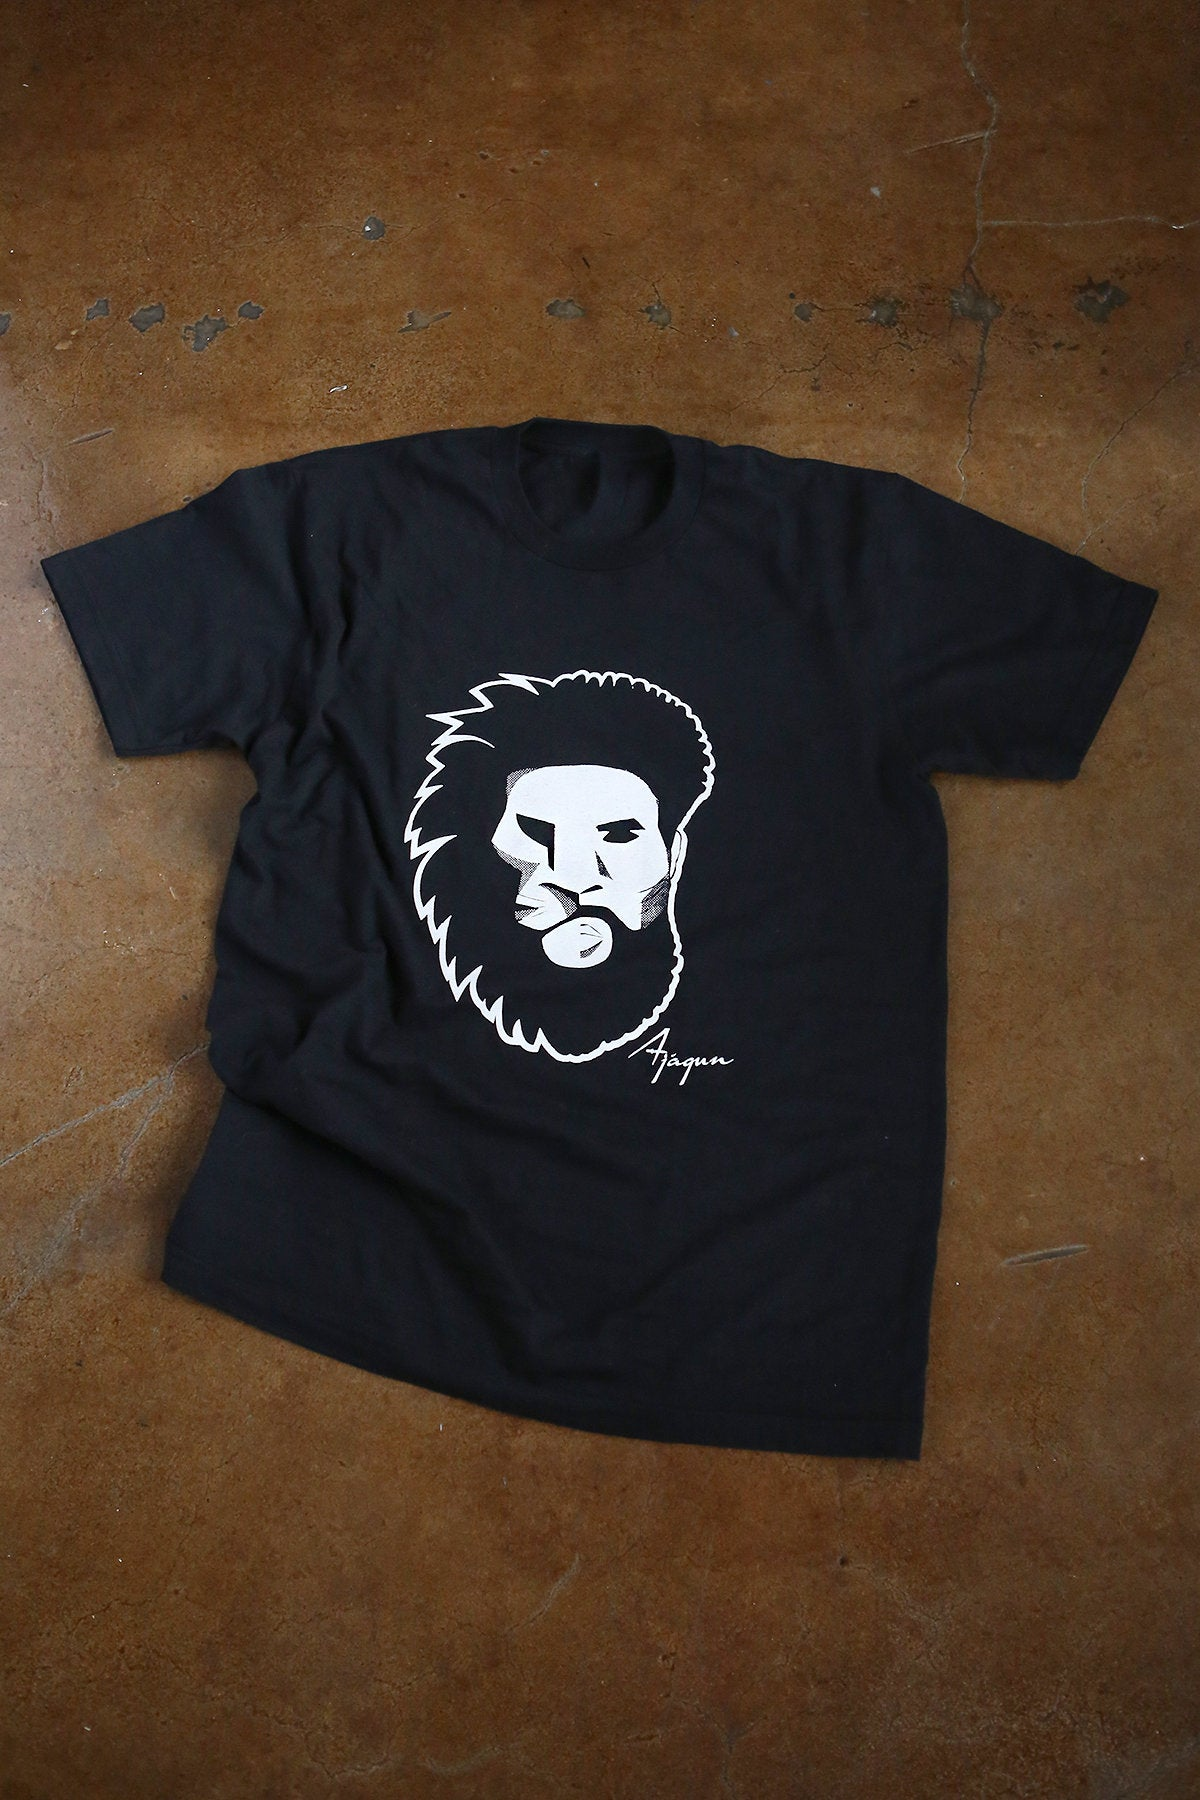 Ajagun Beard Brand T shirt Men's